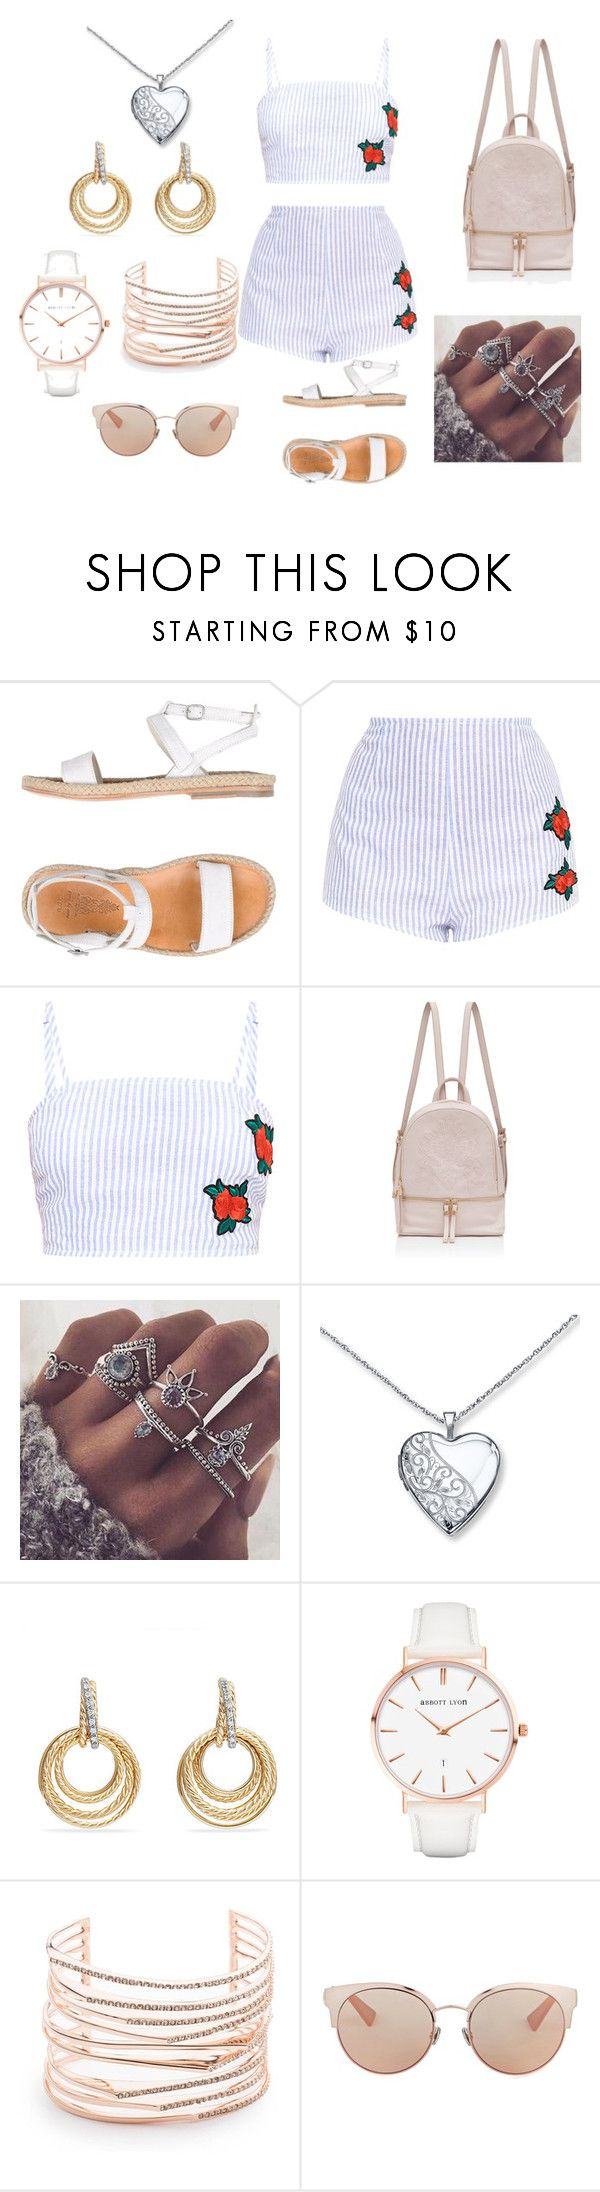 """""""pretty little liars"""" by marndt433 on Polyvore featuring n.d.c., David Yurman, Abbott Lyon, Alexis Bittar and Christian Dior"""